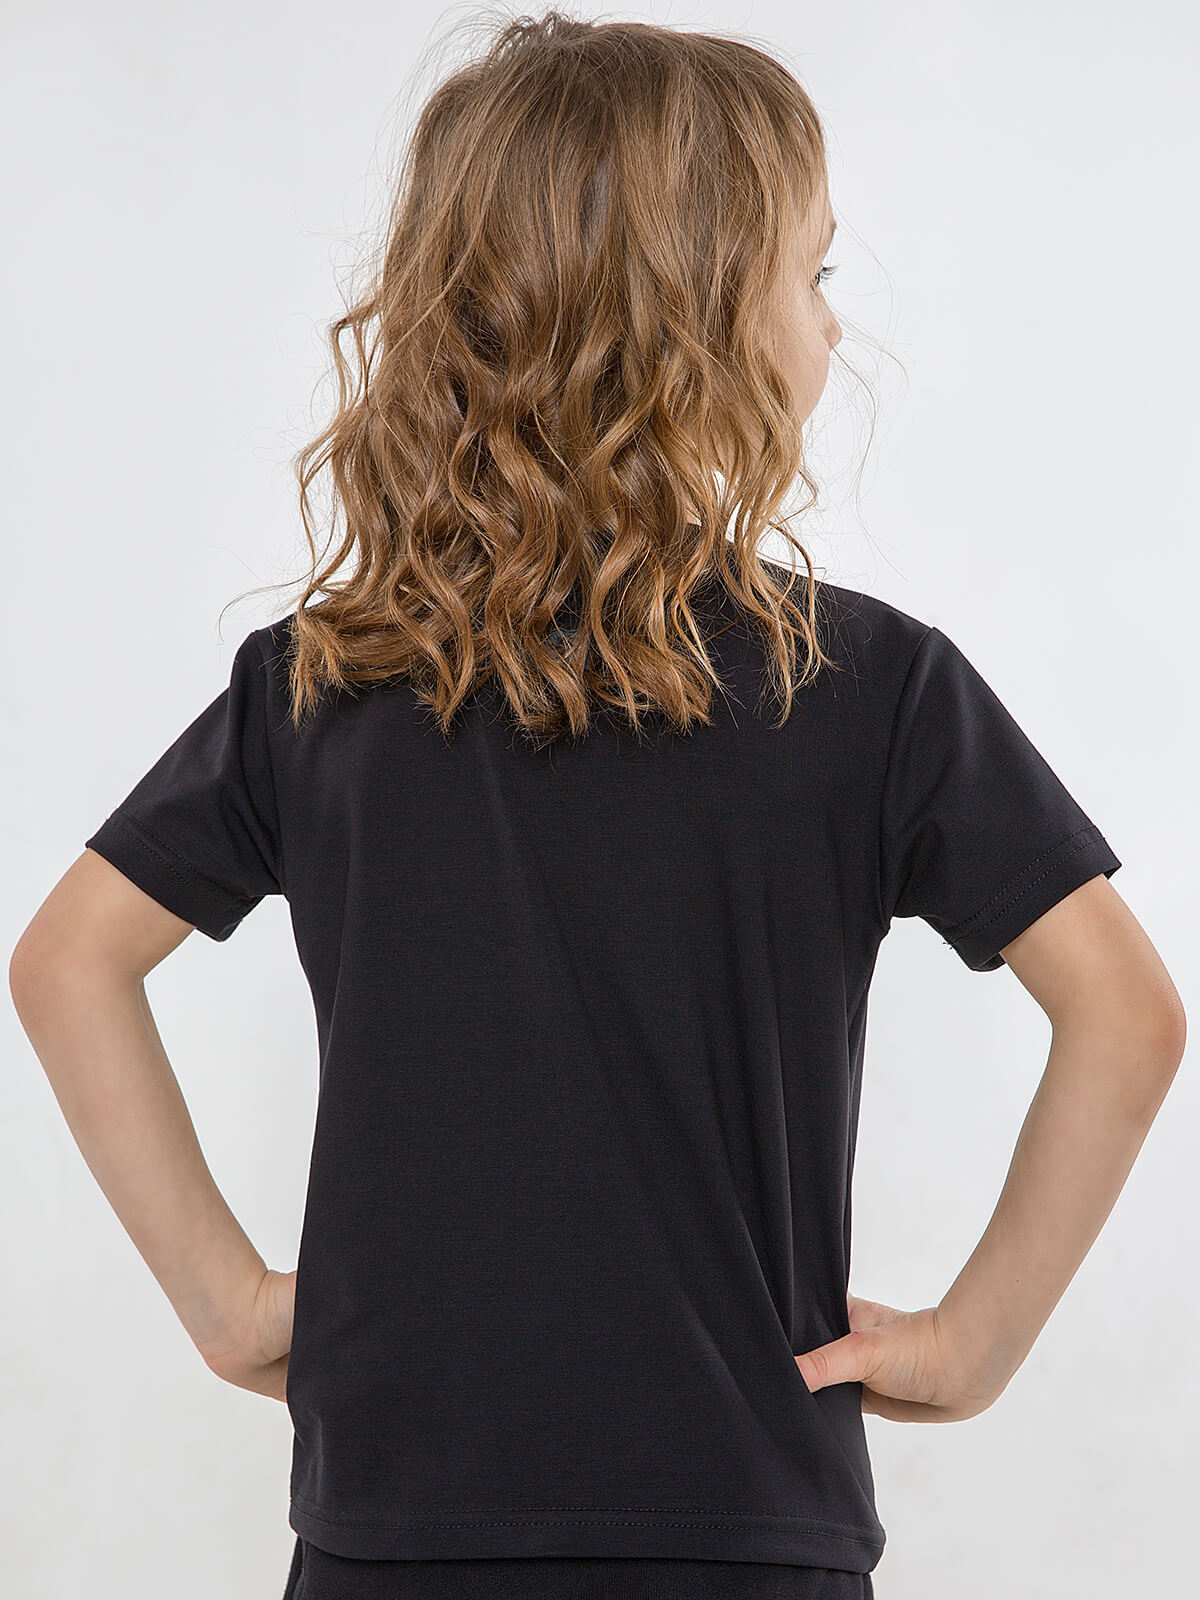 Kids T-Shirt Roundel. Color black.  The color shades on your screen may differ from the original color.